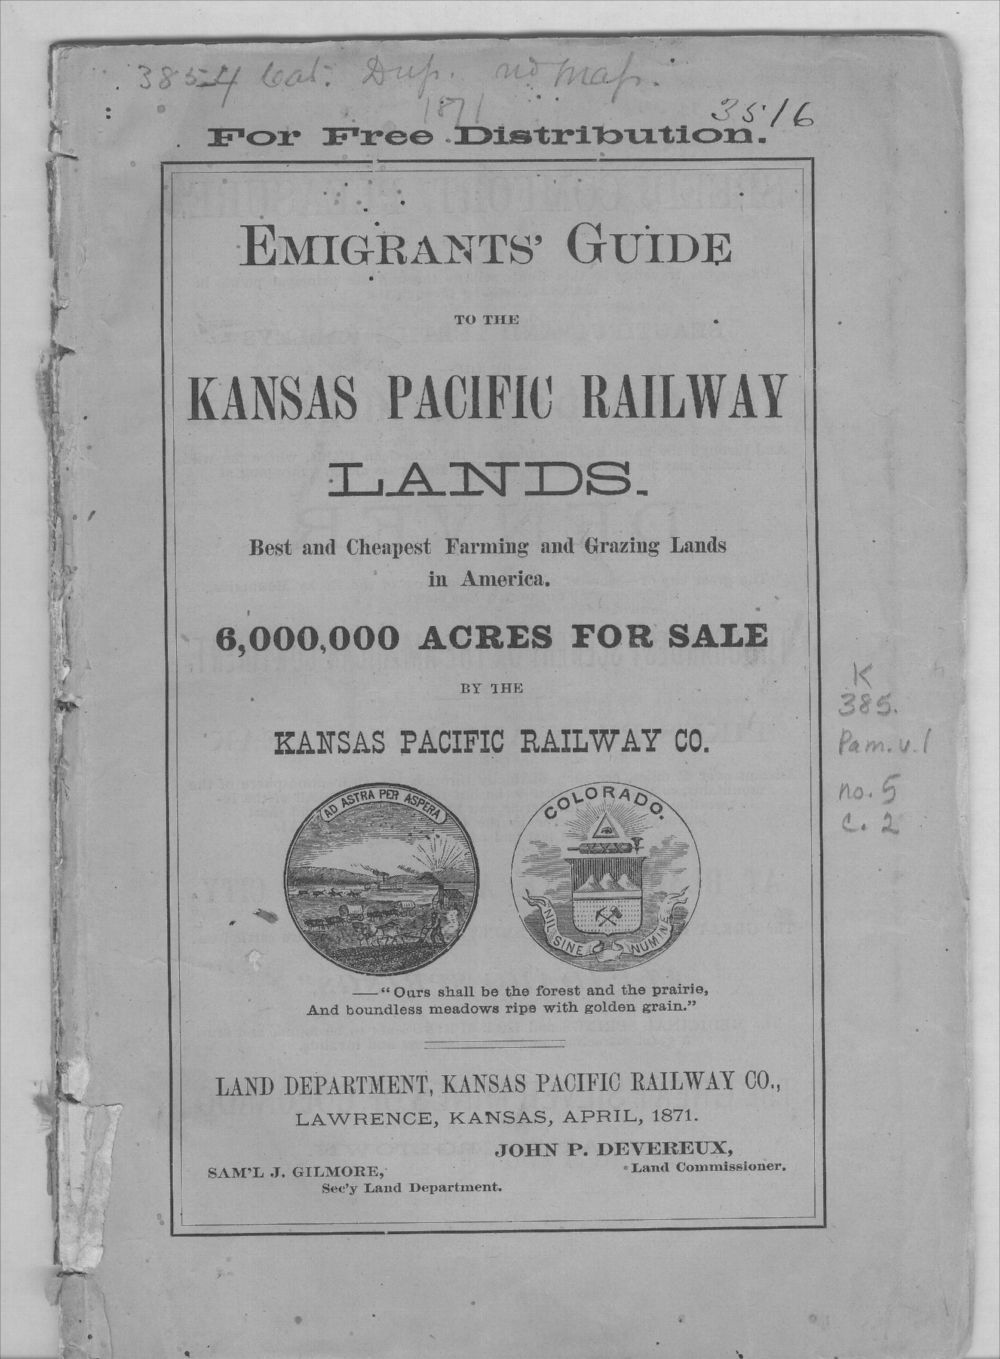 Emigrants' guide to the Kansas Pacific Railway lands - Front Cover